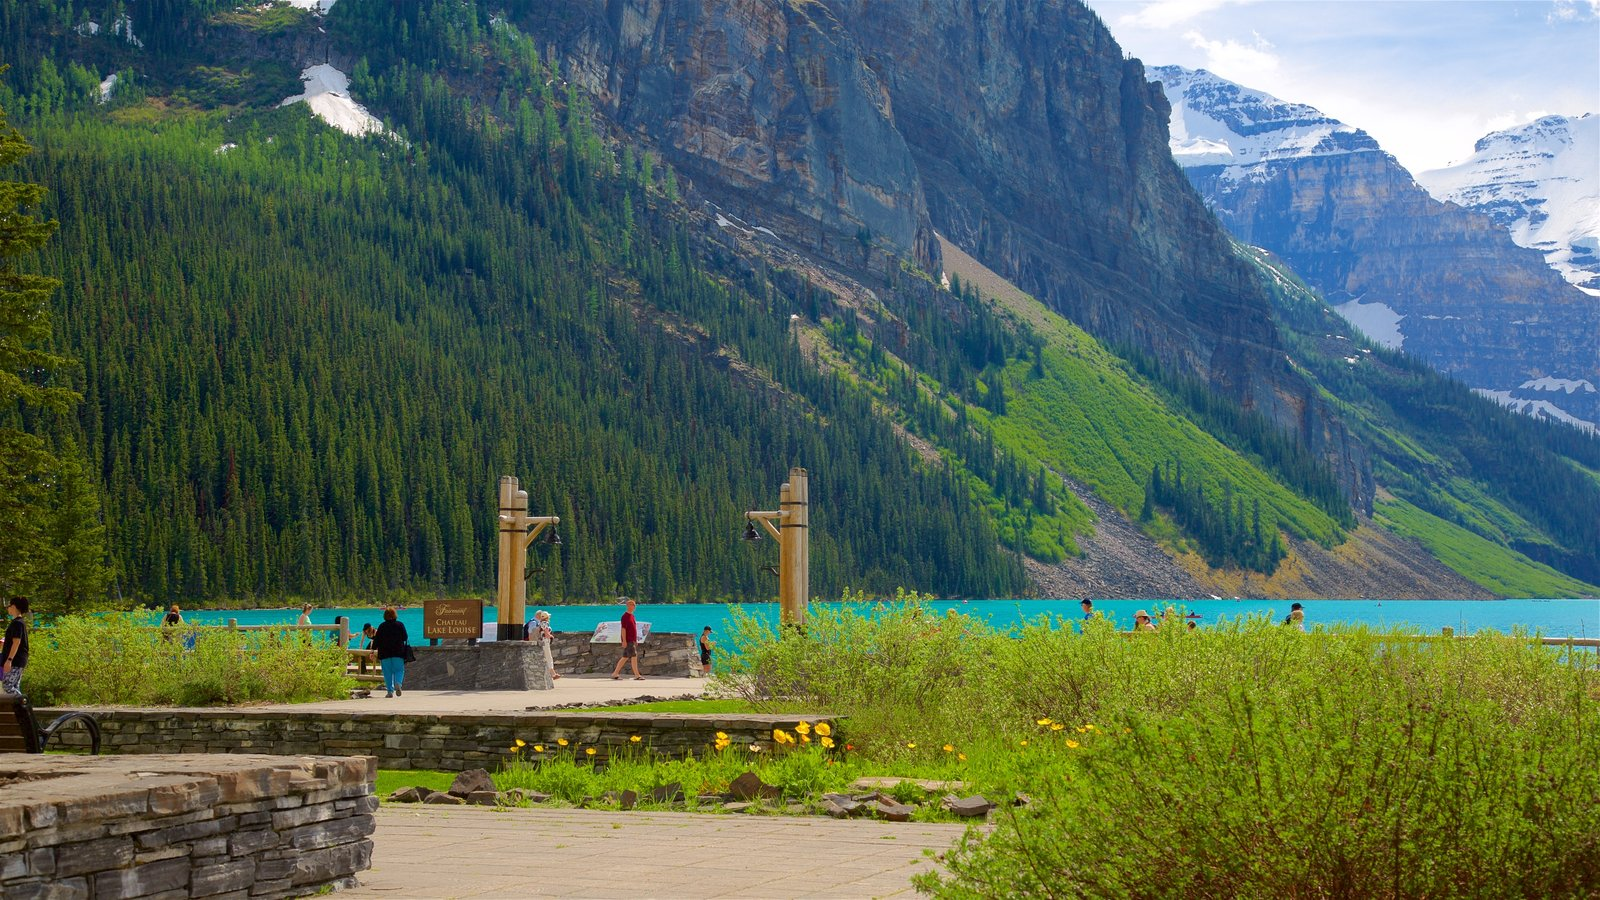 Banff National Park which includes landscape views, tranquil scenes and a lake or waterhole